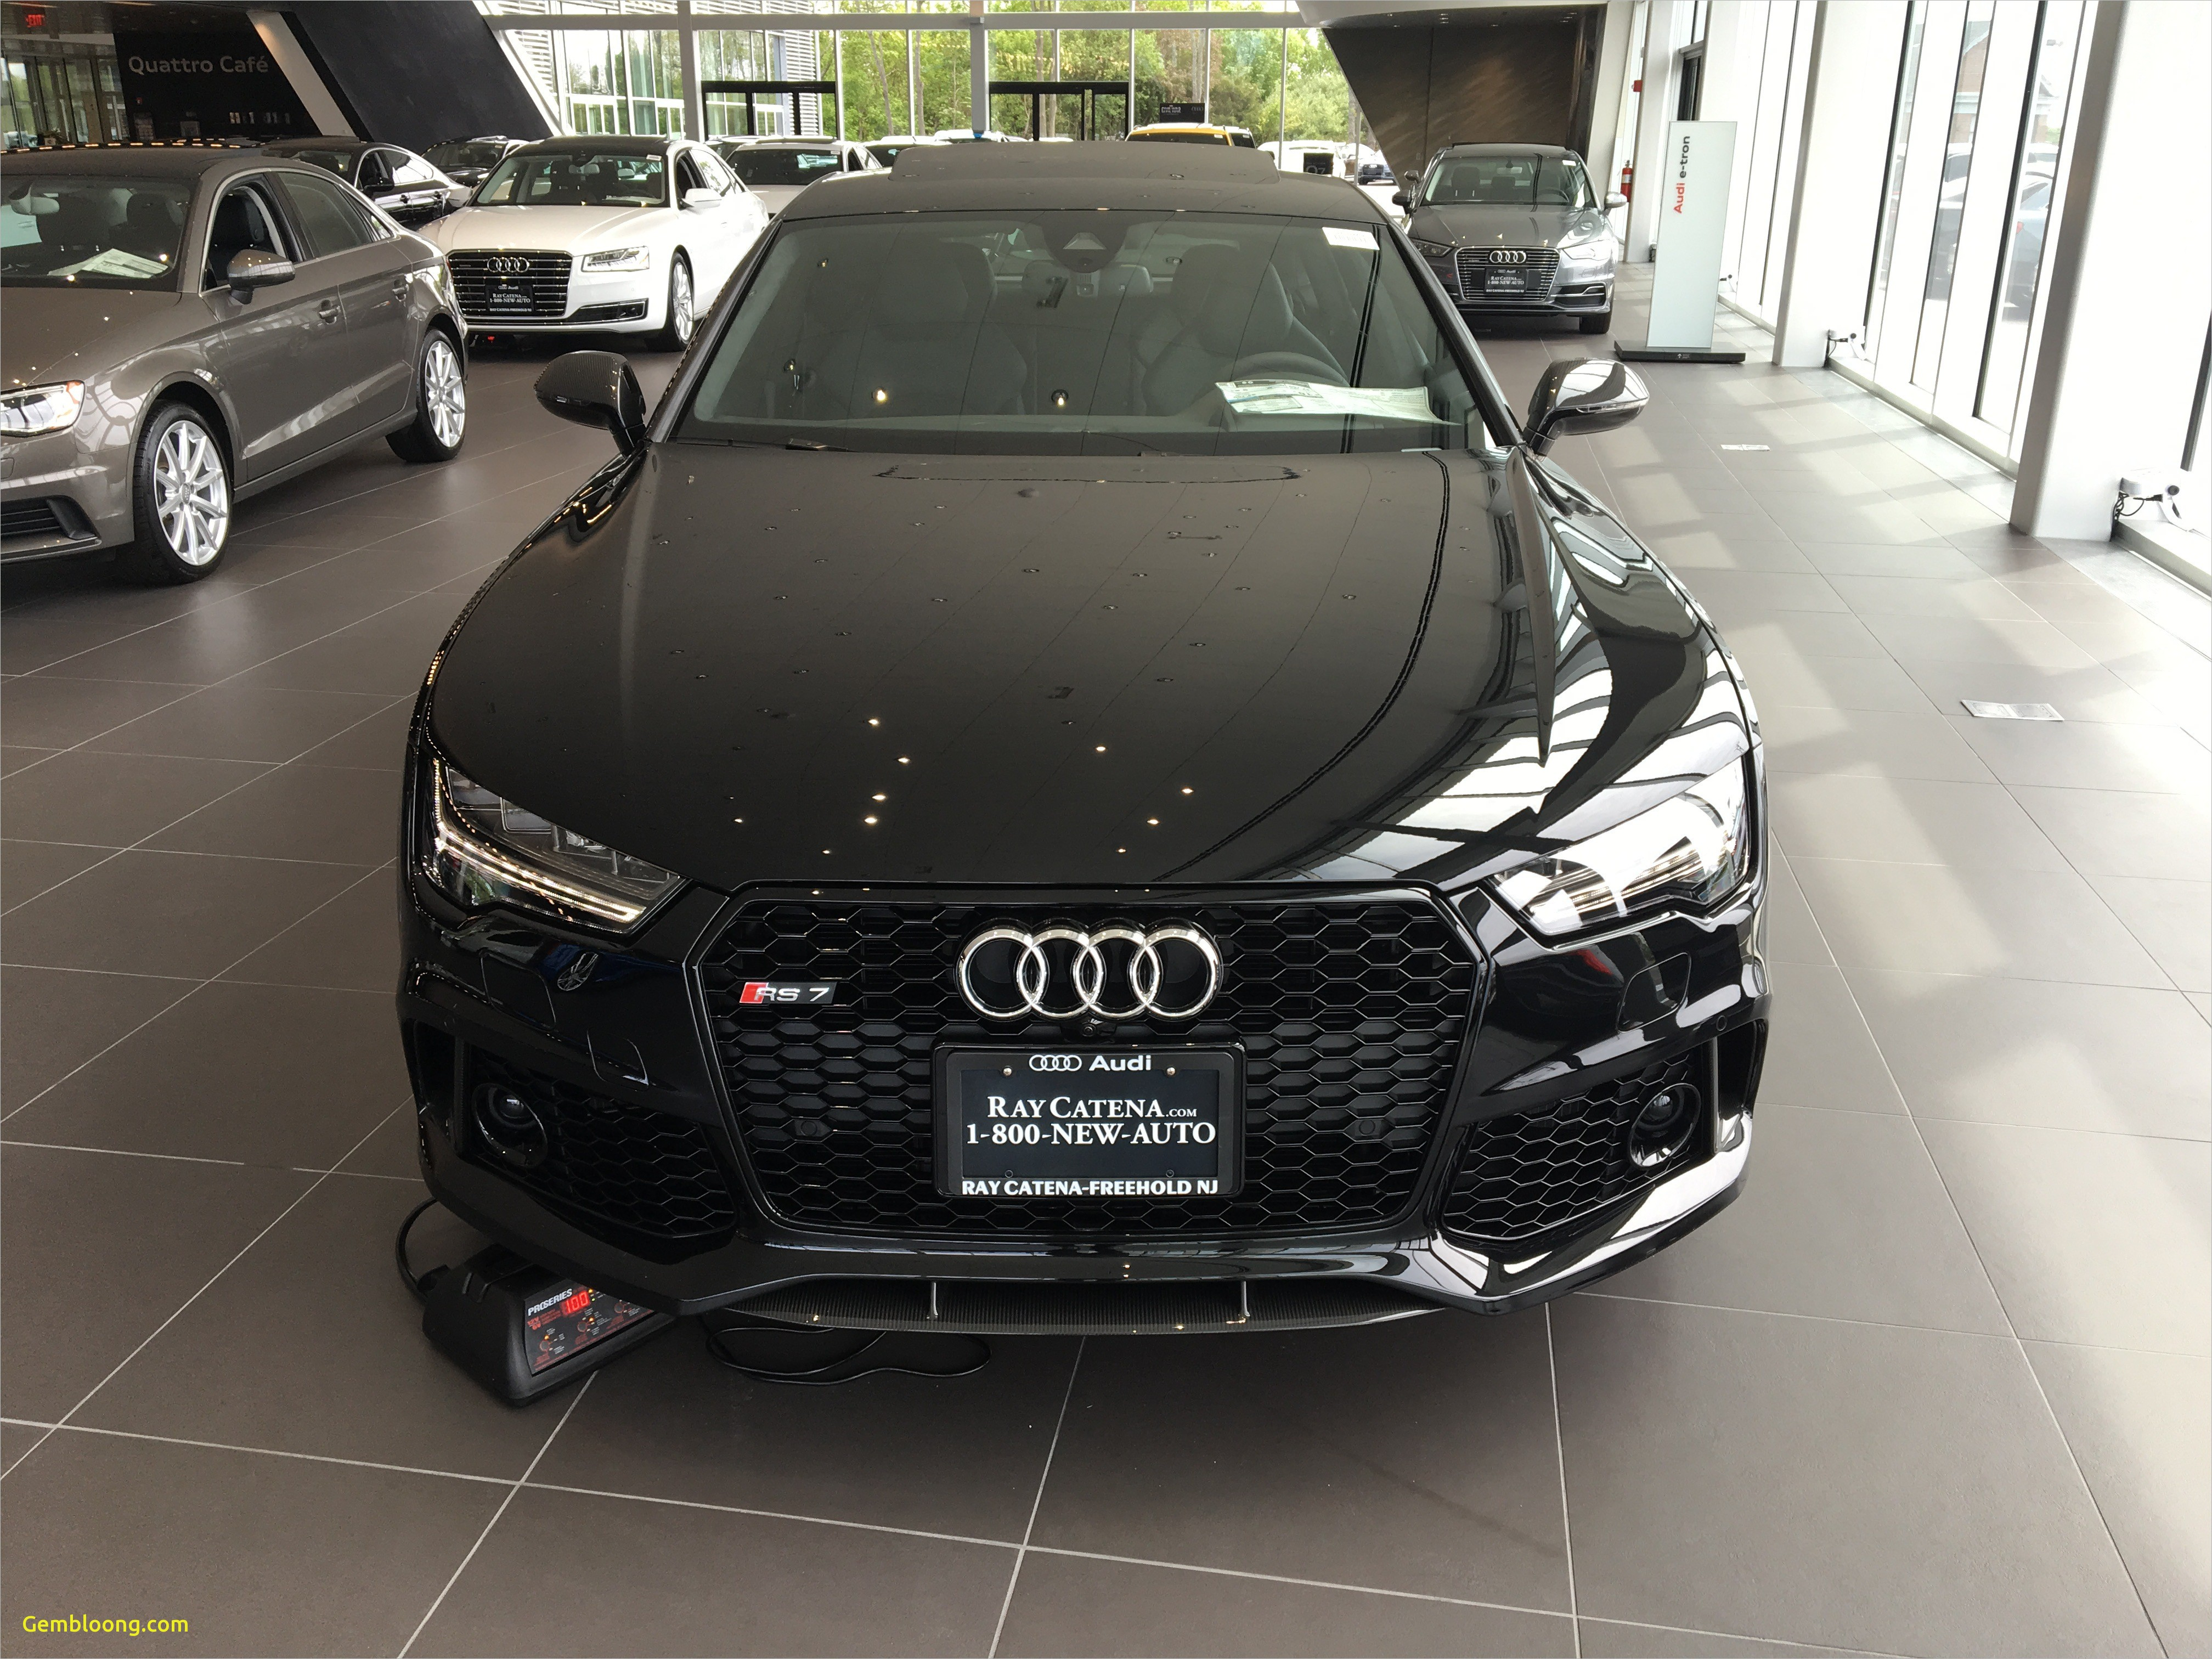 Lovely Cars for Sale Near Me for Under 3000